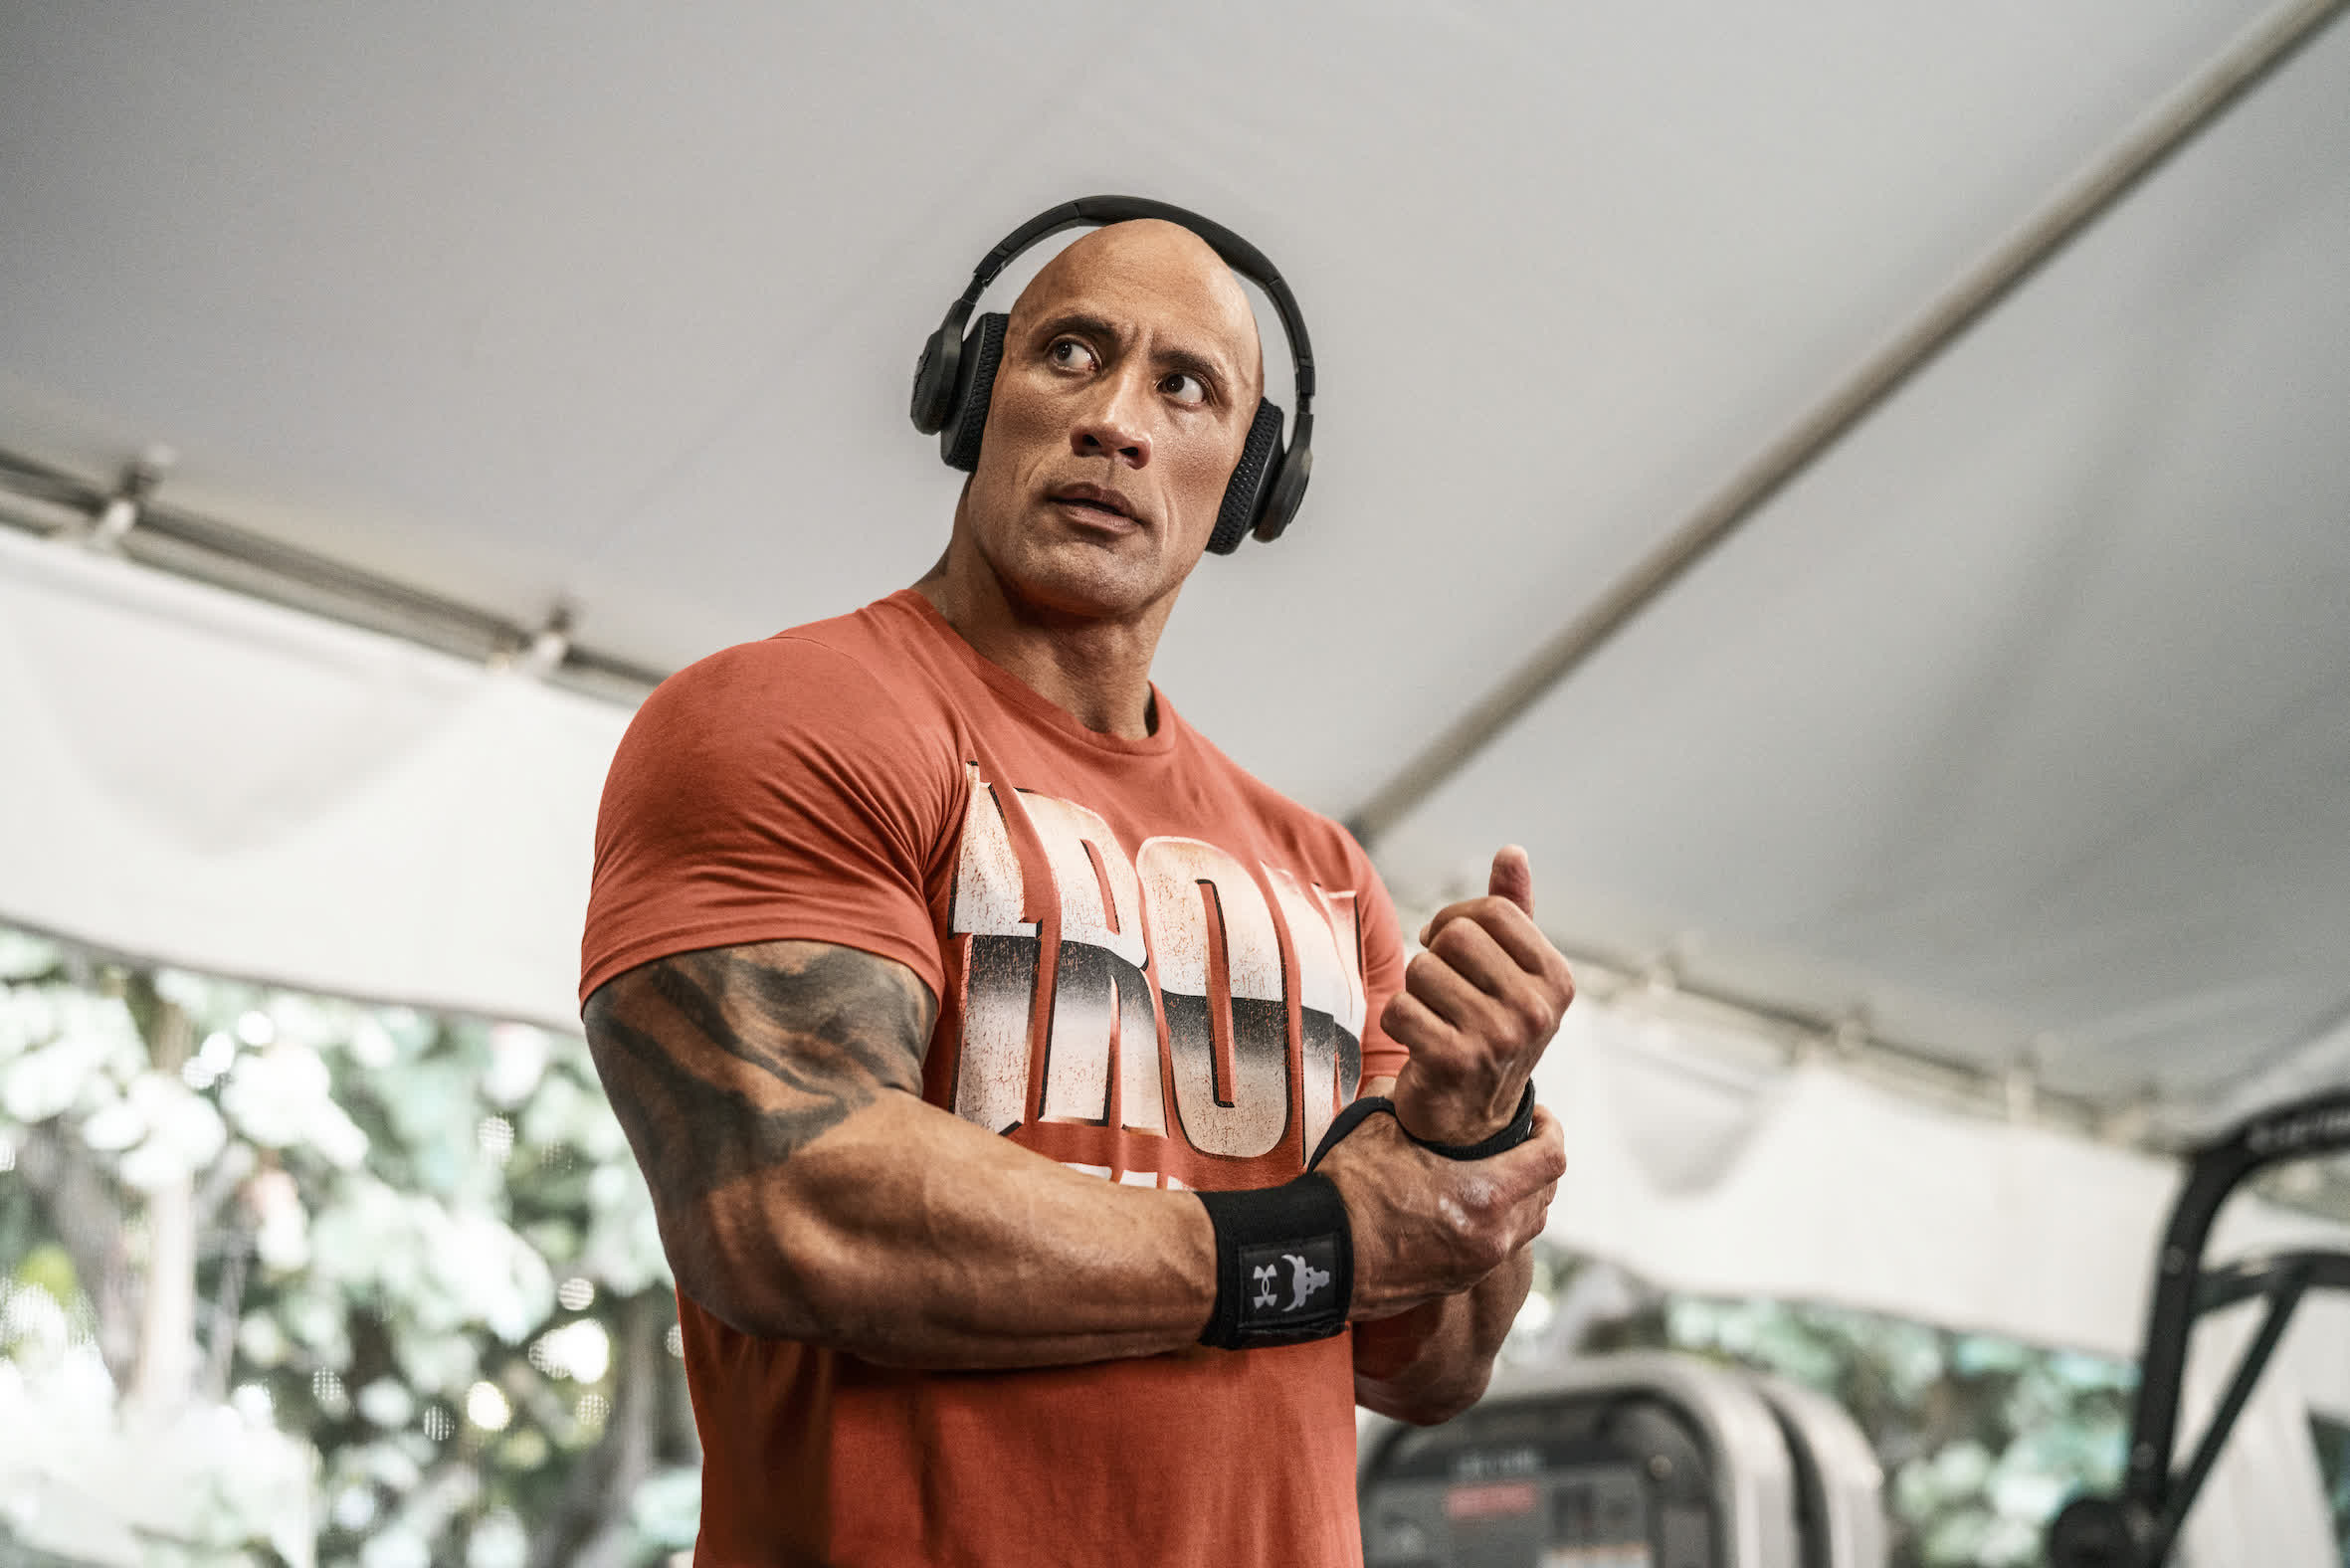 The Rock teams up with JBL and Under Armour on a pair of over-ear sports headphones